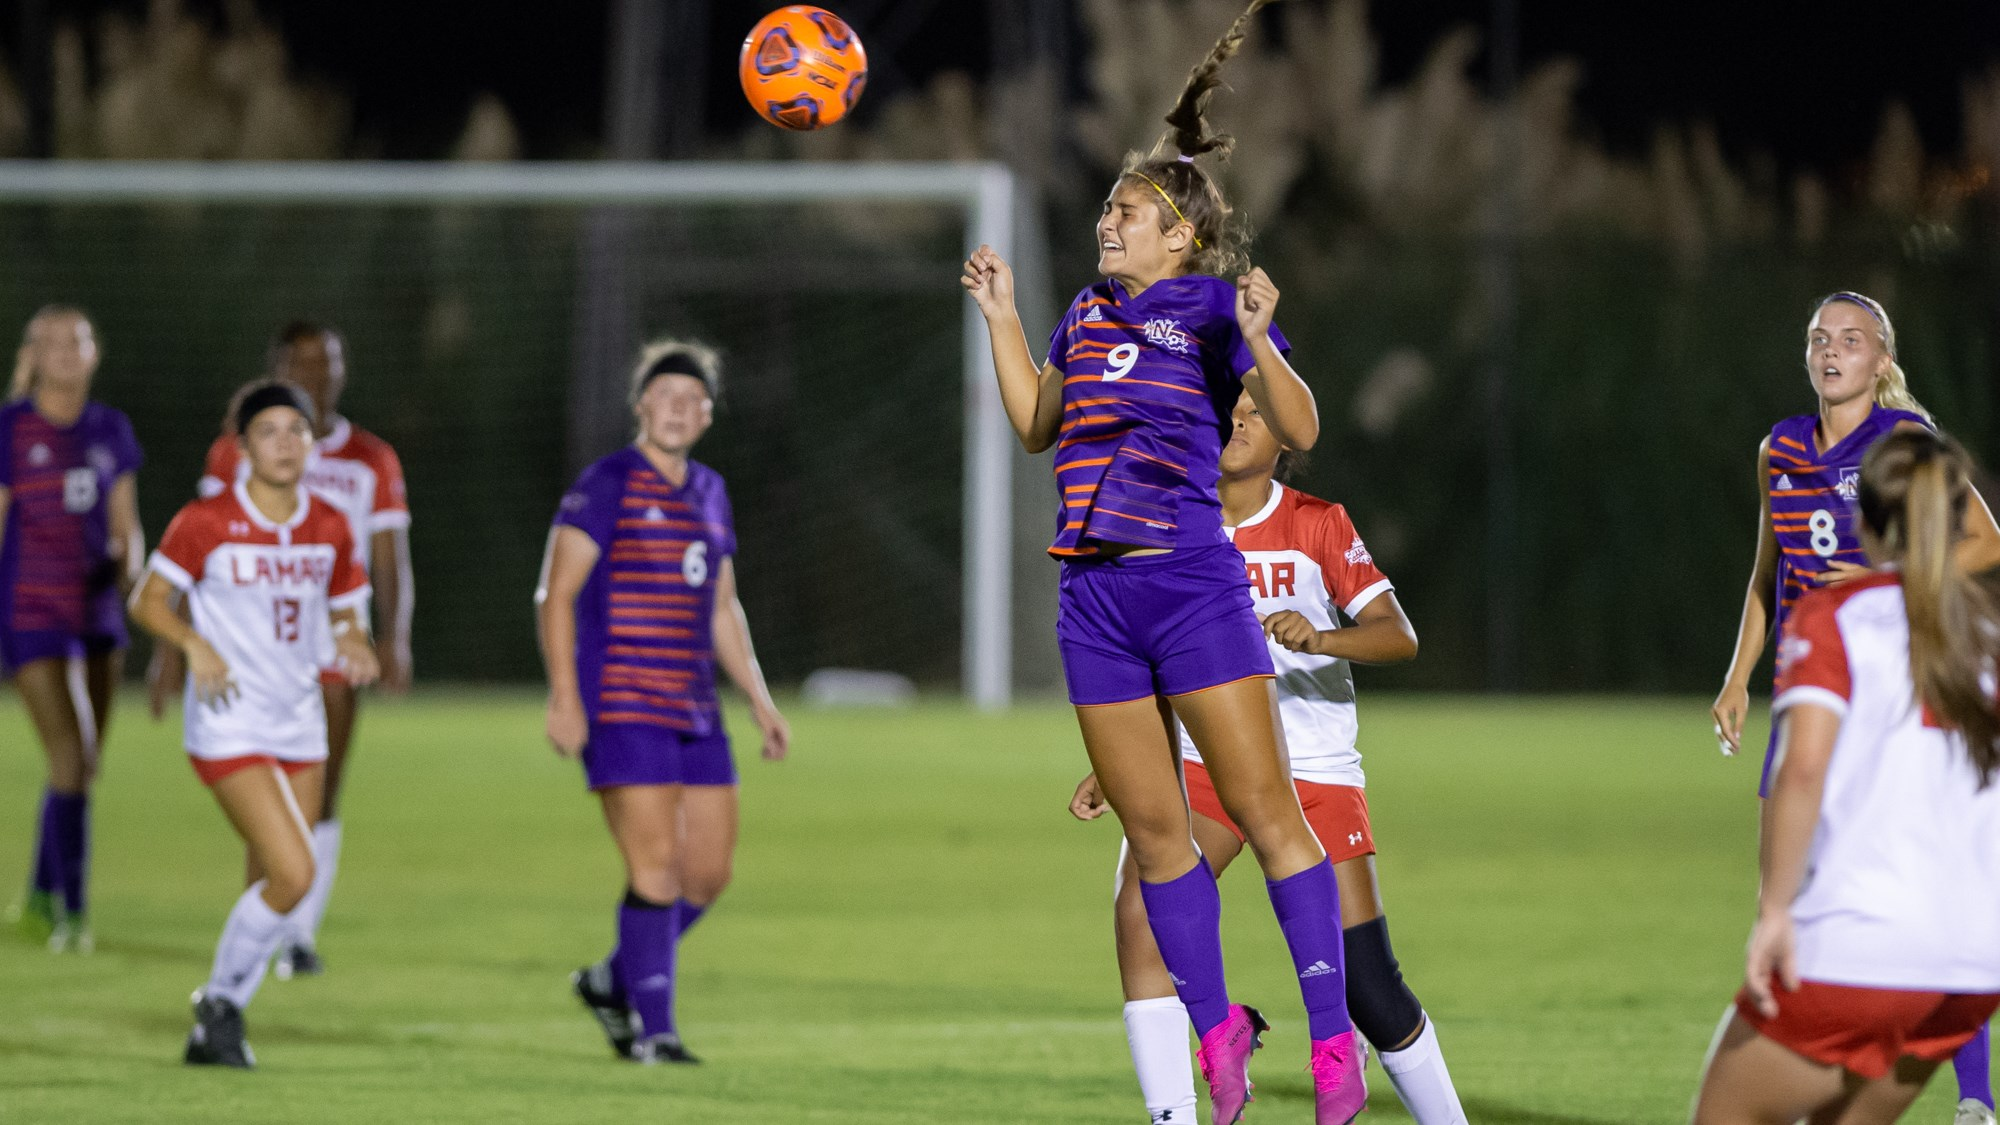 Alexis Texas Wikipedia olivia draguicevich - lady demon soccer - northwestern state